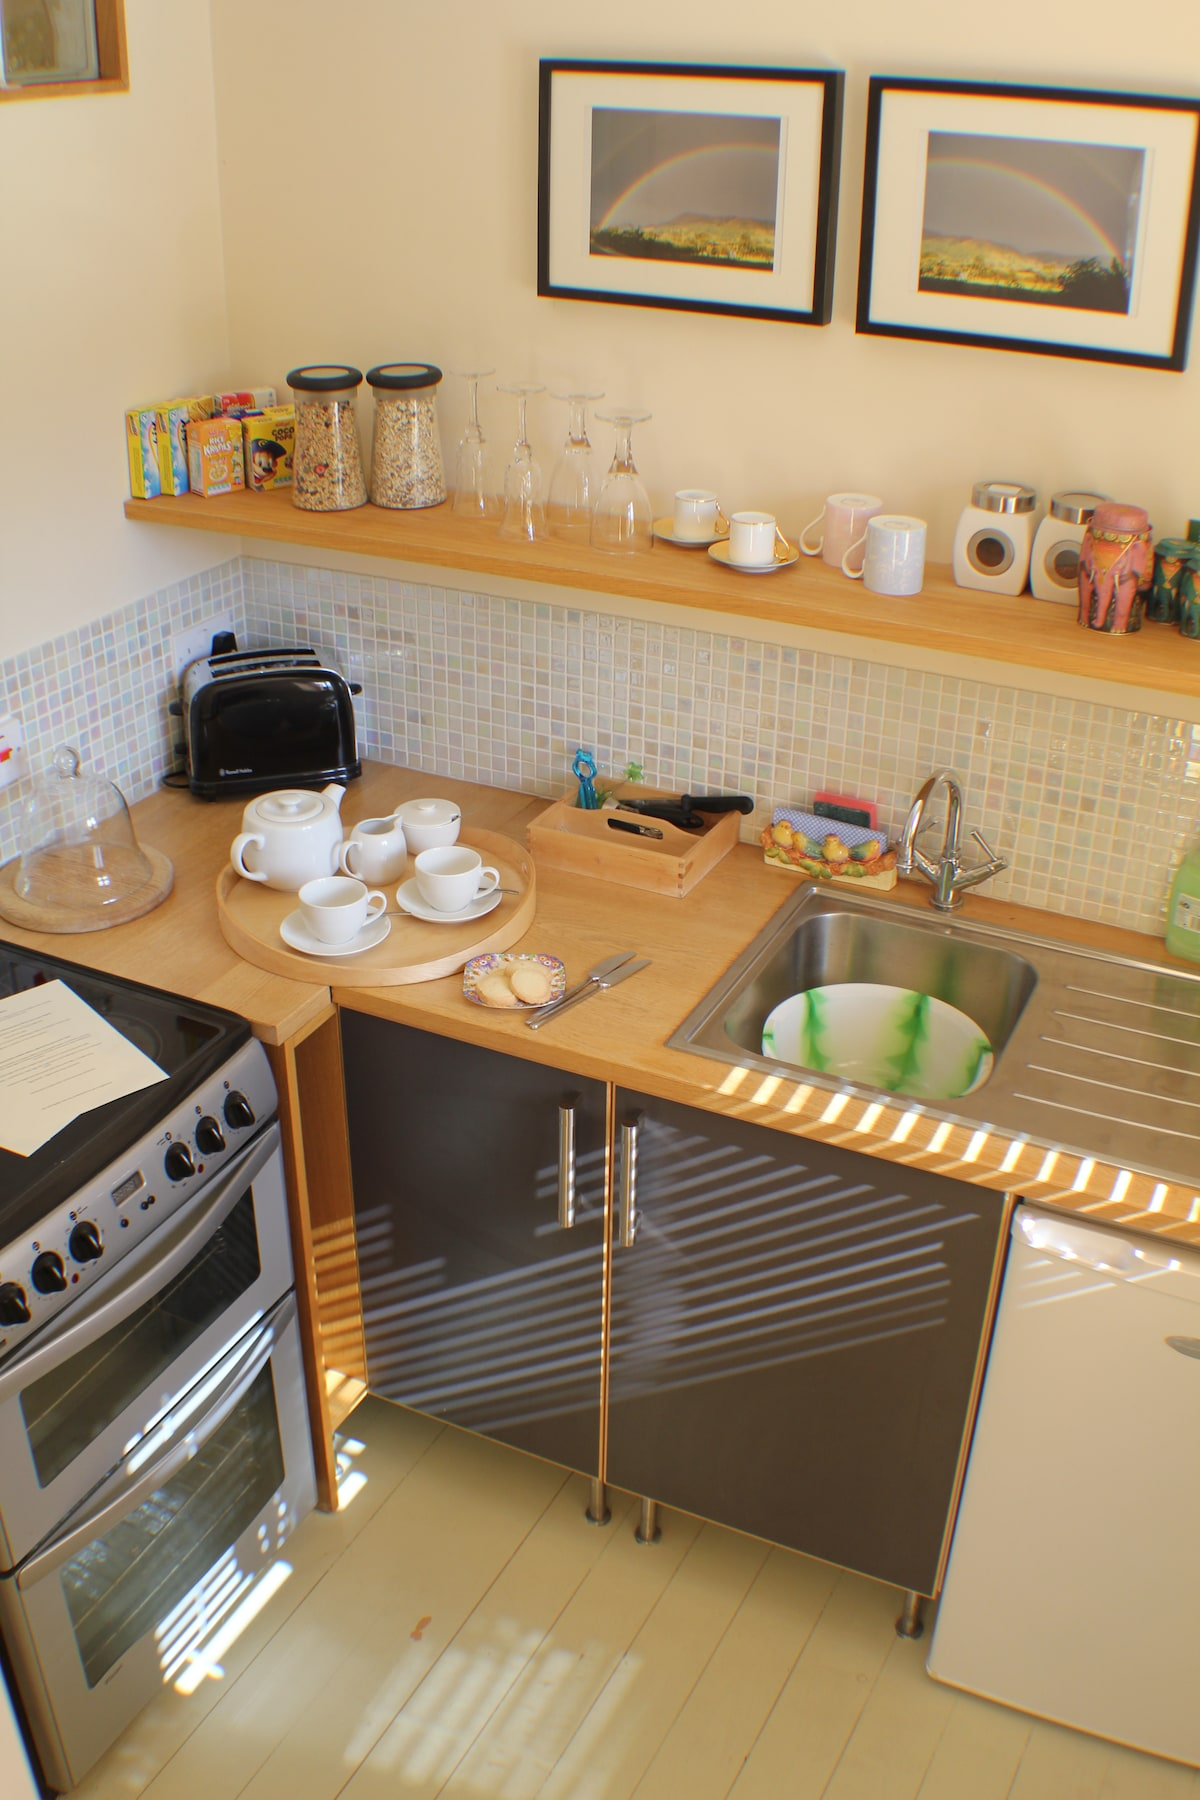 Private kitchen with cooker, fridge and tea/coffee making facilities